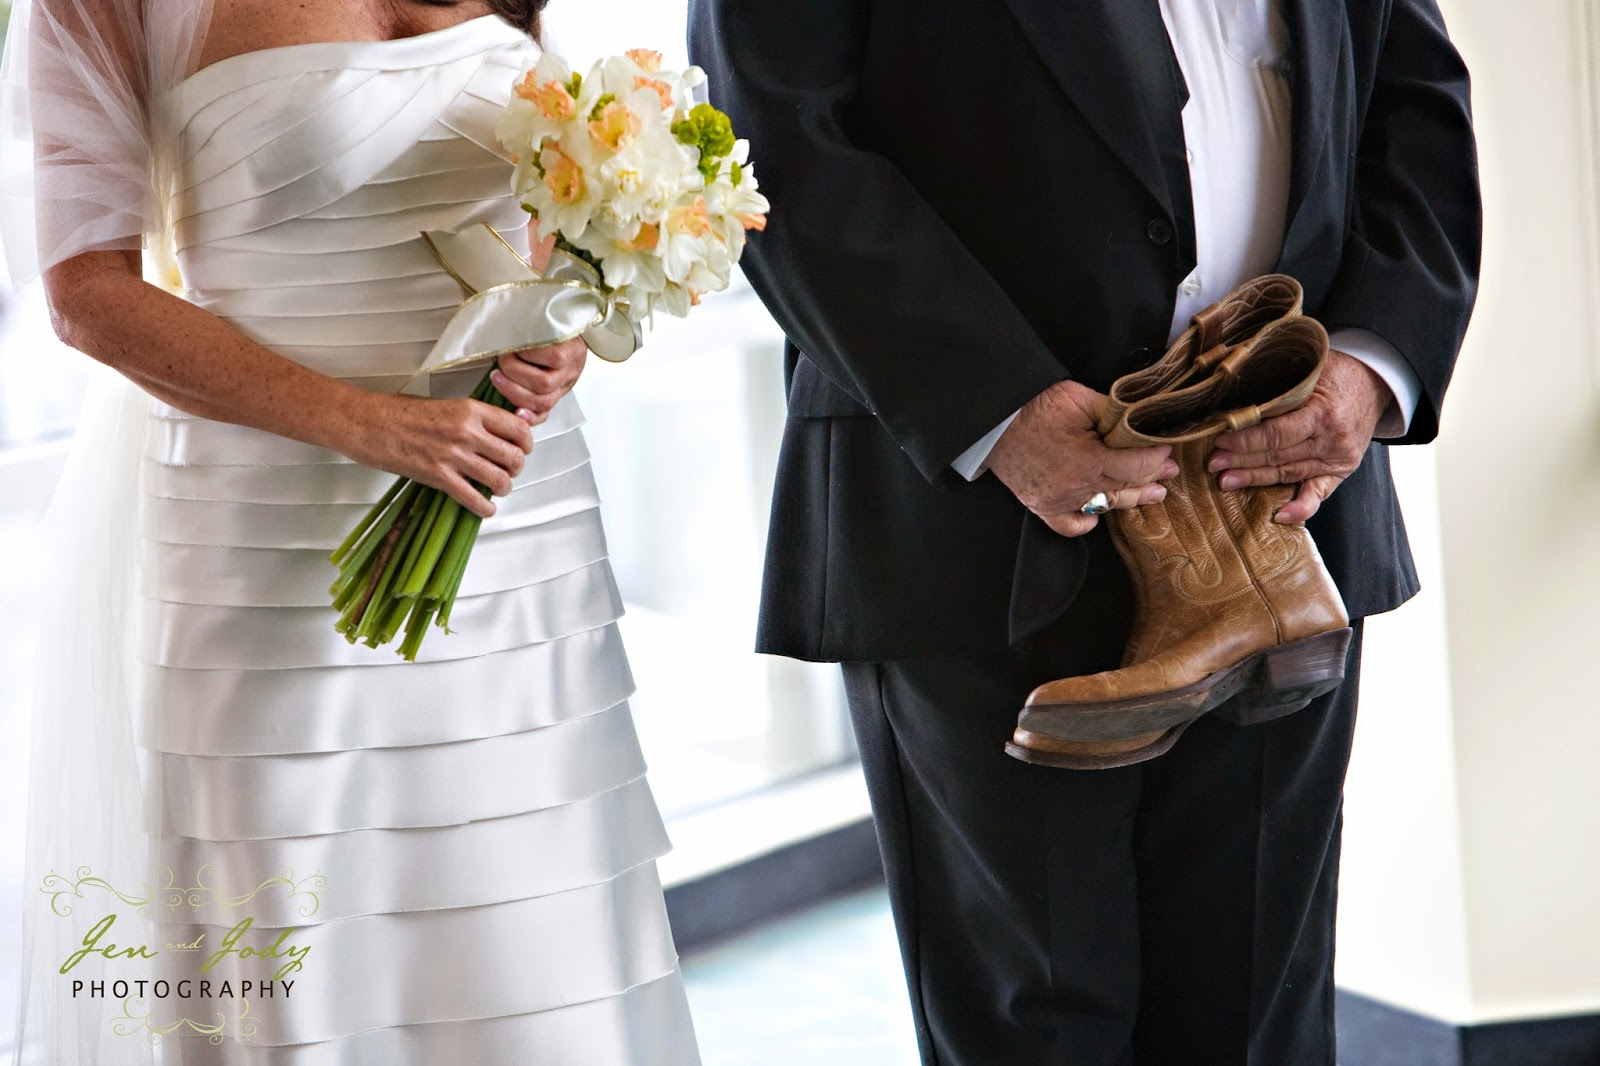 Wedding ceremony included a boot ritual - Patricia Stimac, Seattle Wedding Officiant